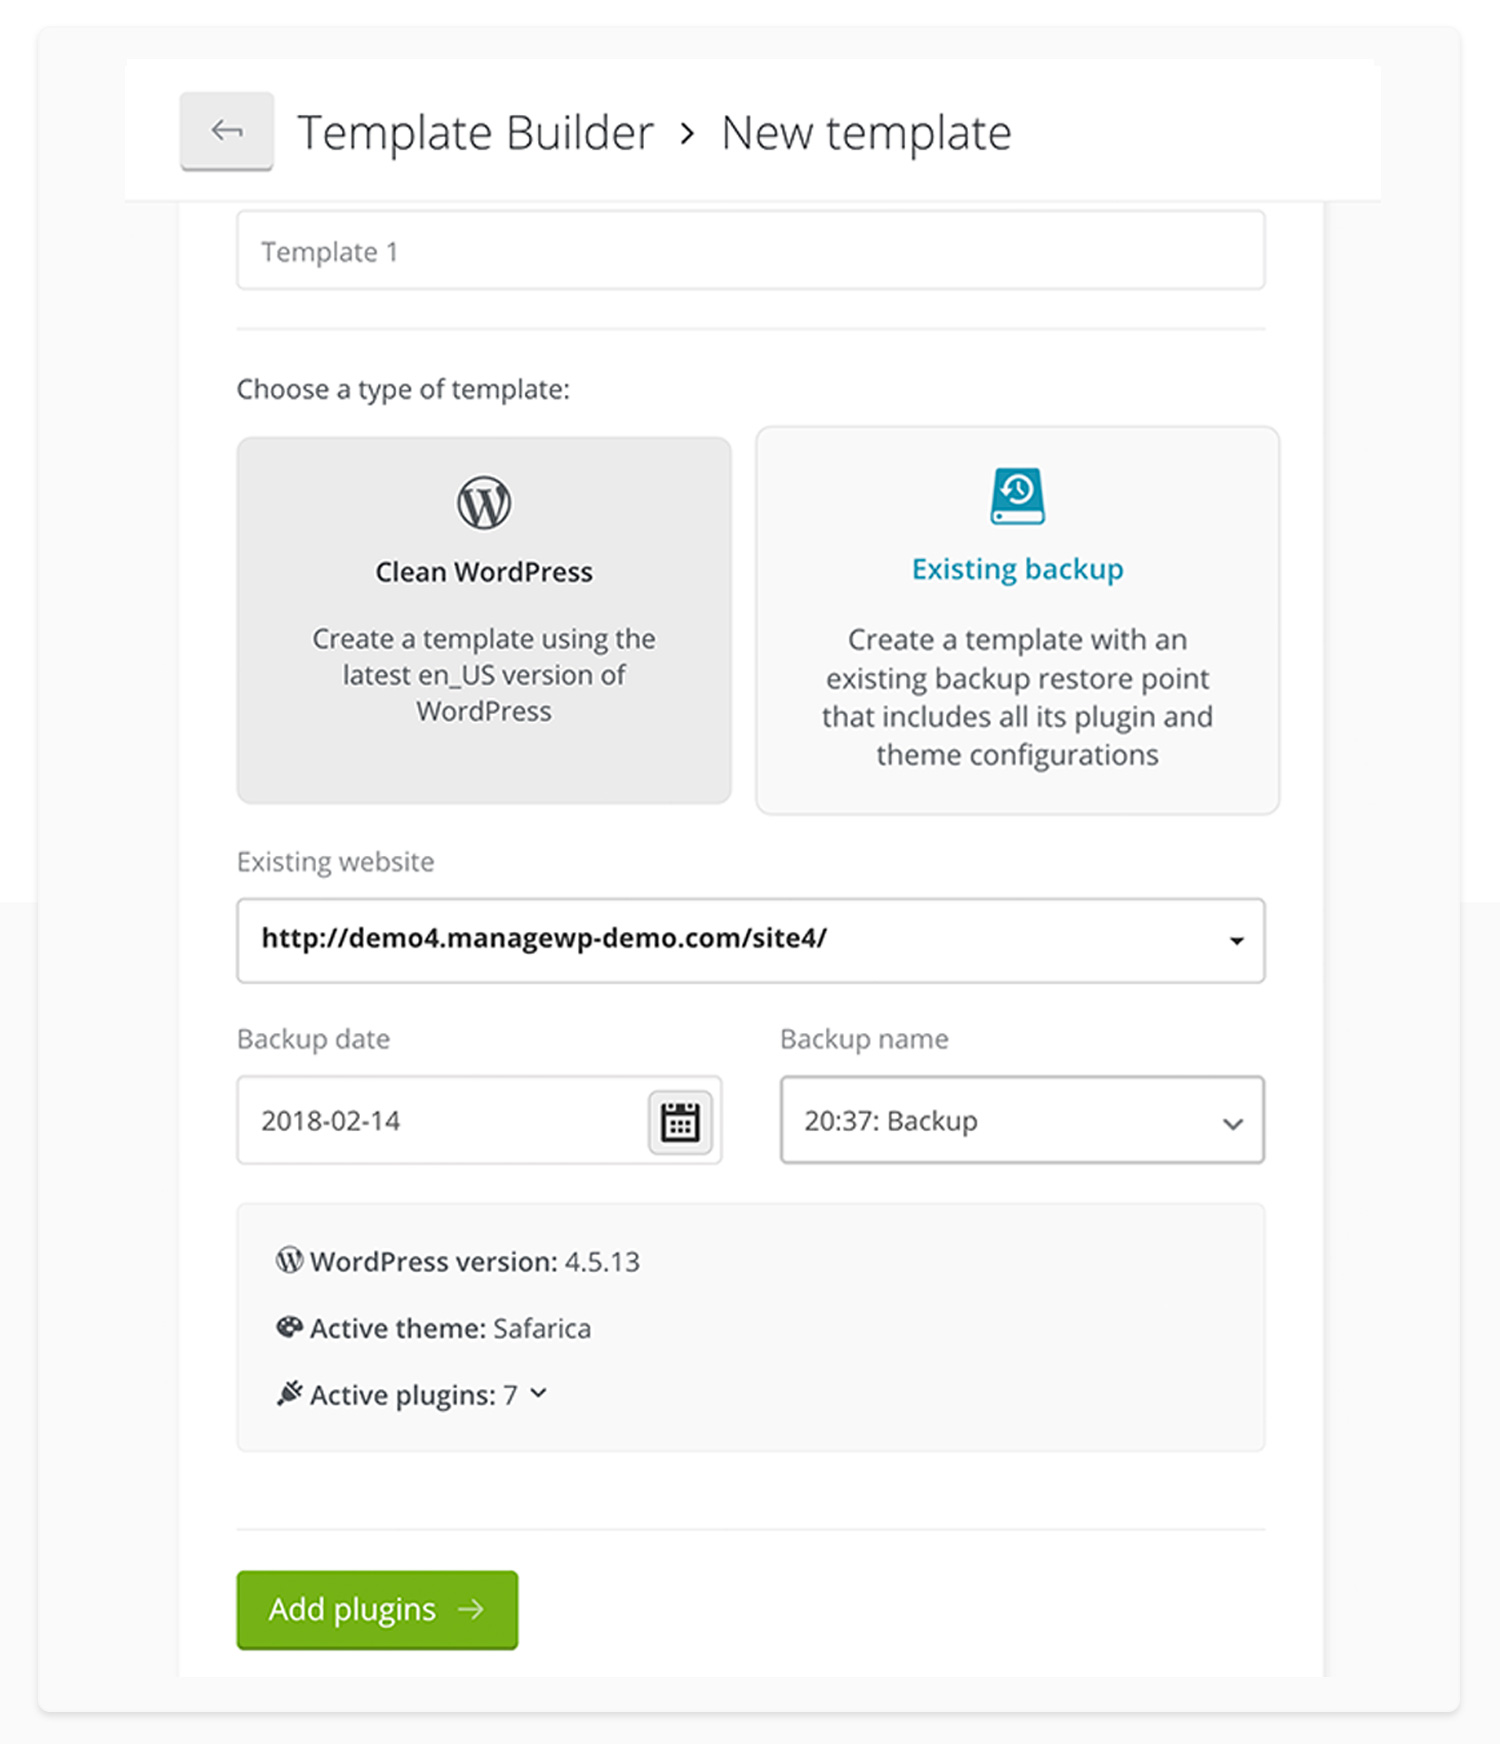 Template Builder Managewp